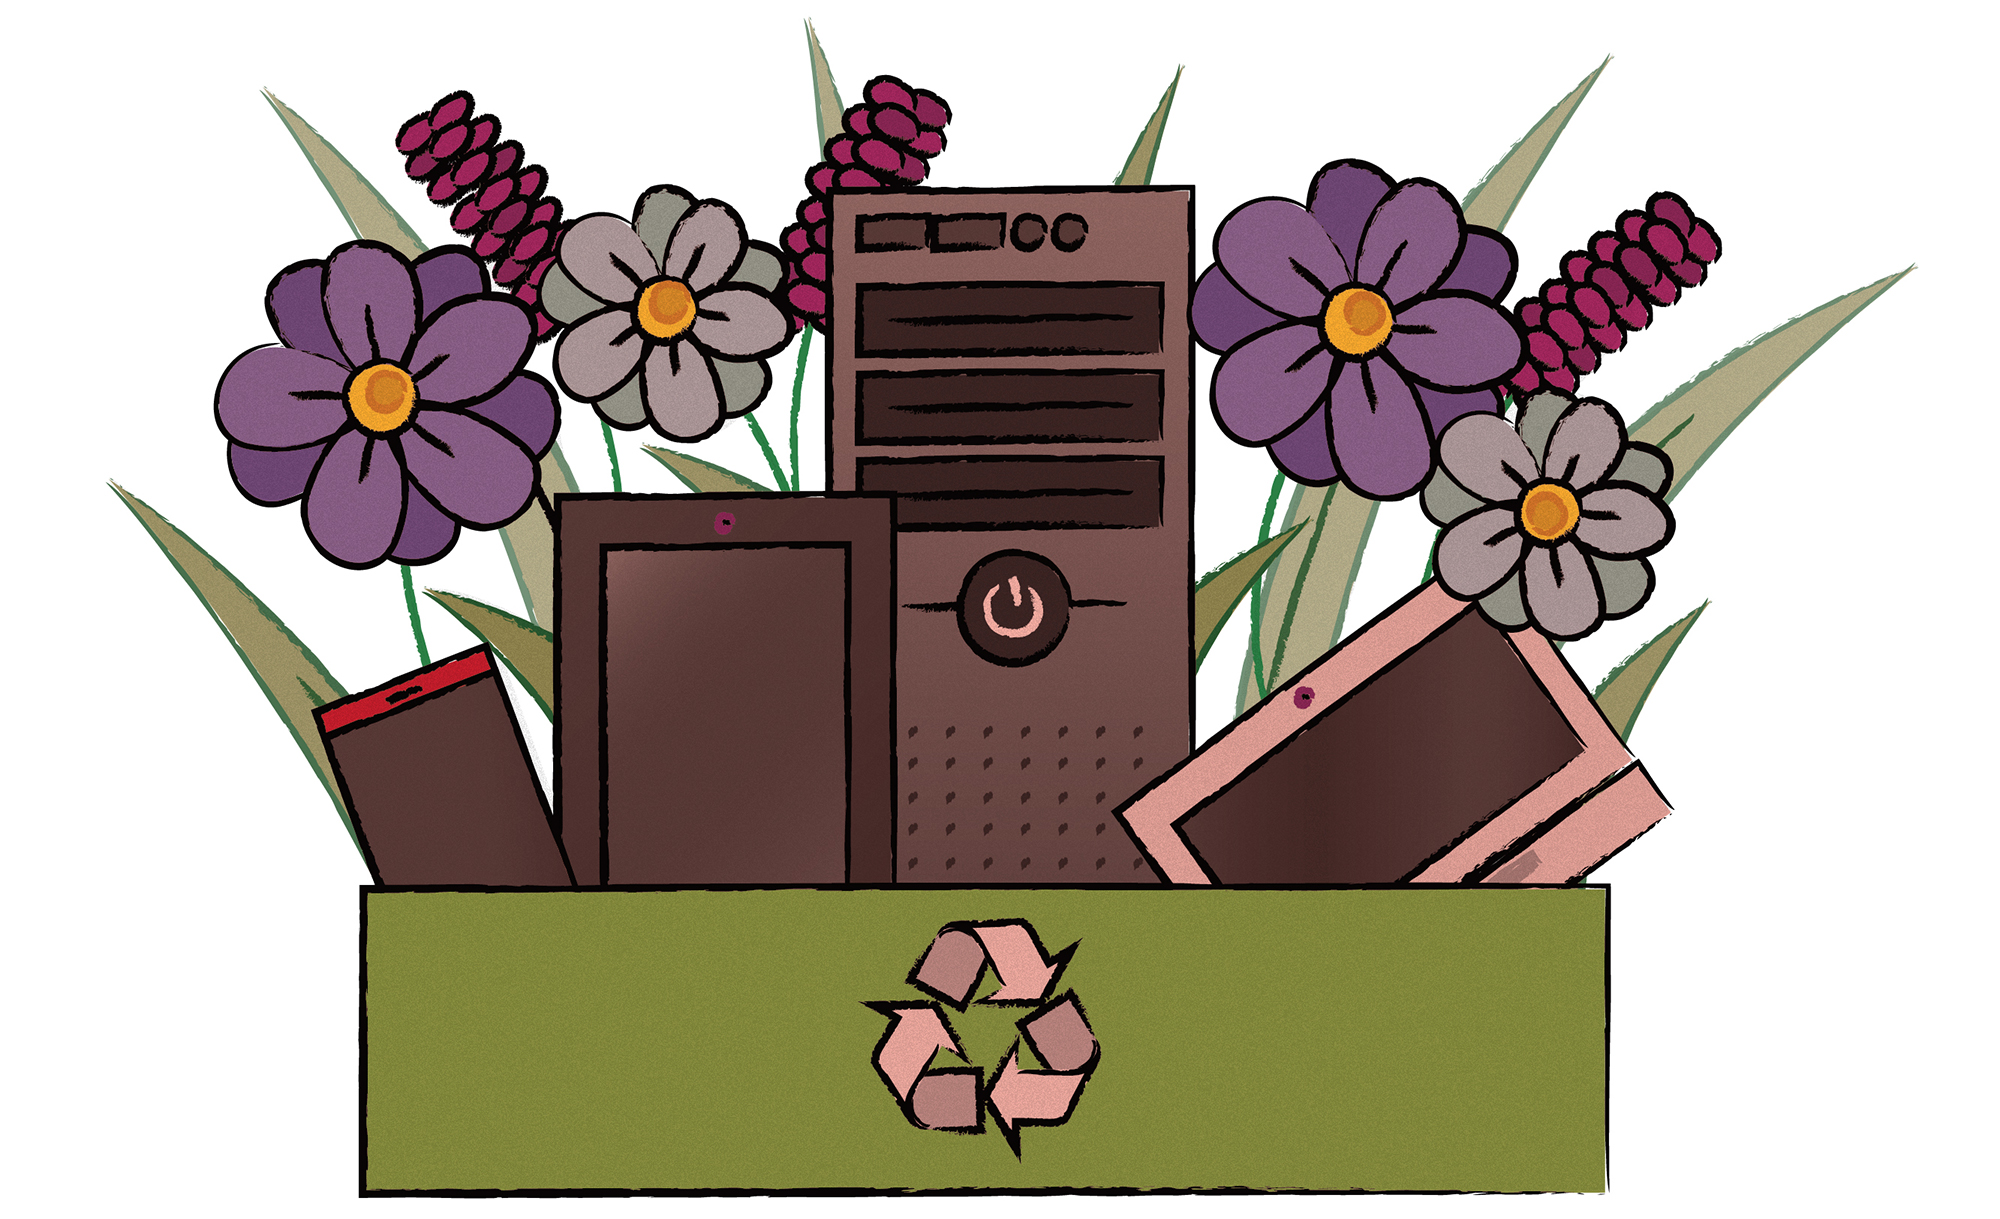 Box of recycled electronics with flowers and plants in it